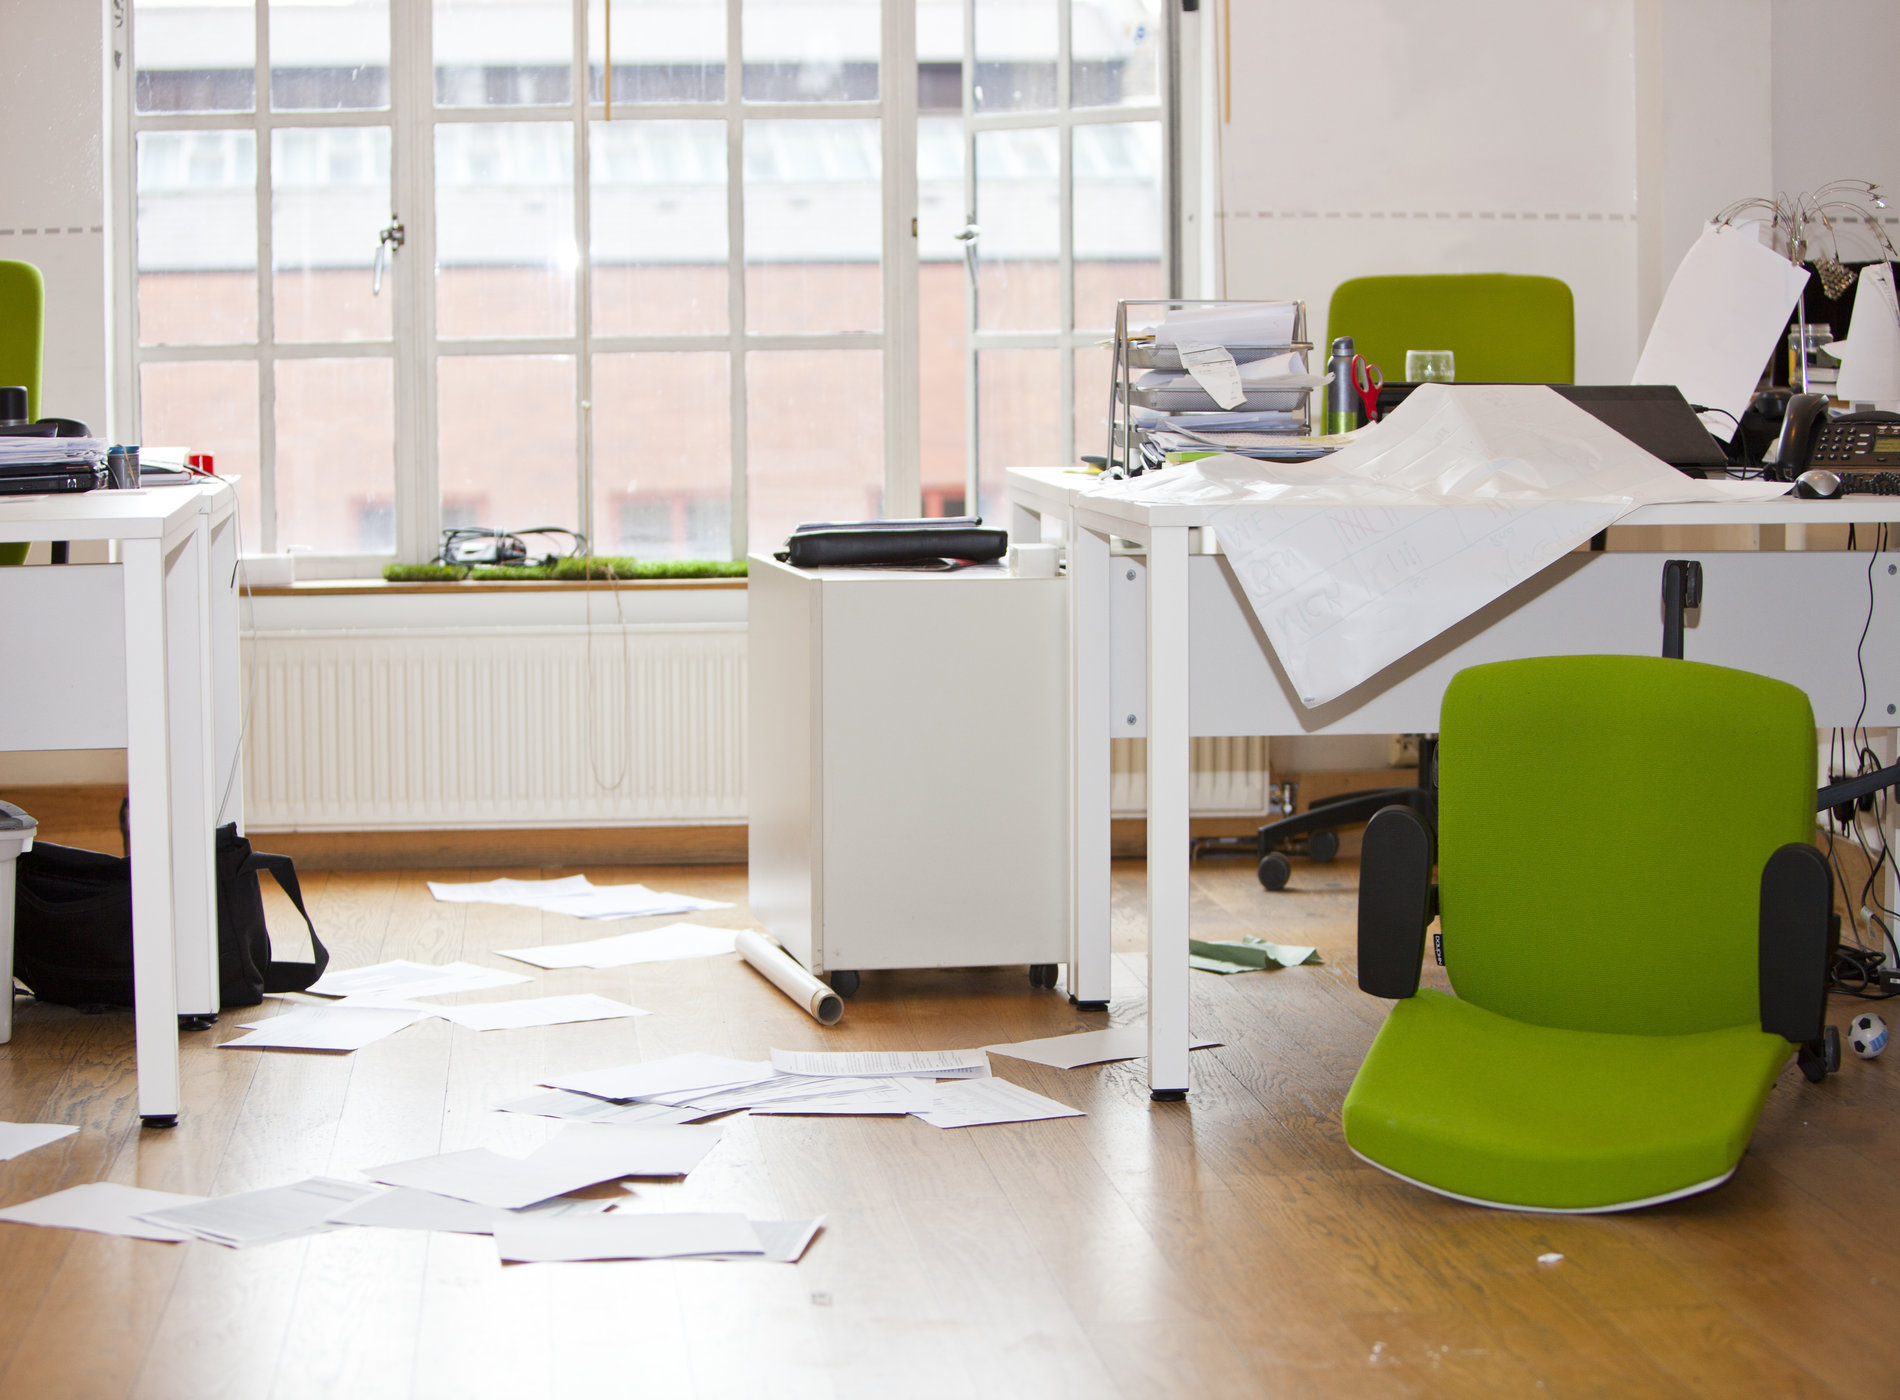 Close-up view of ransacked office